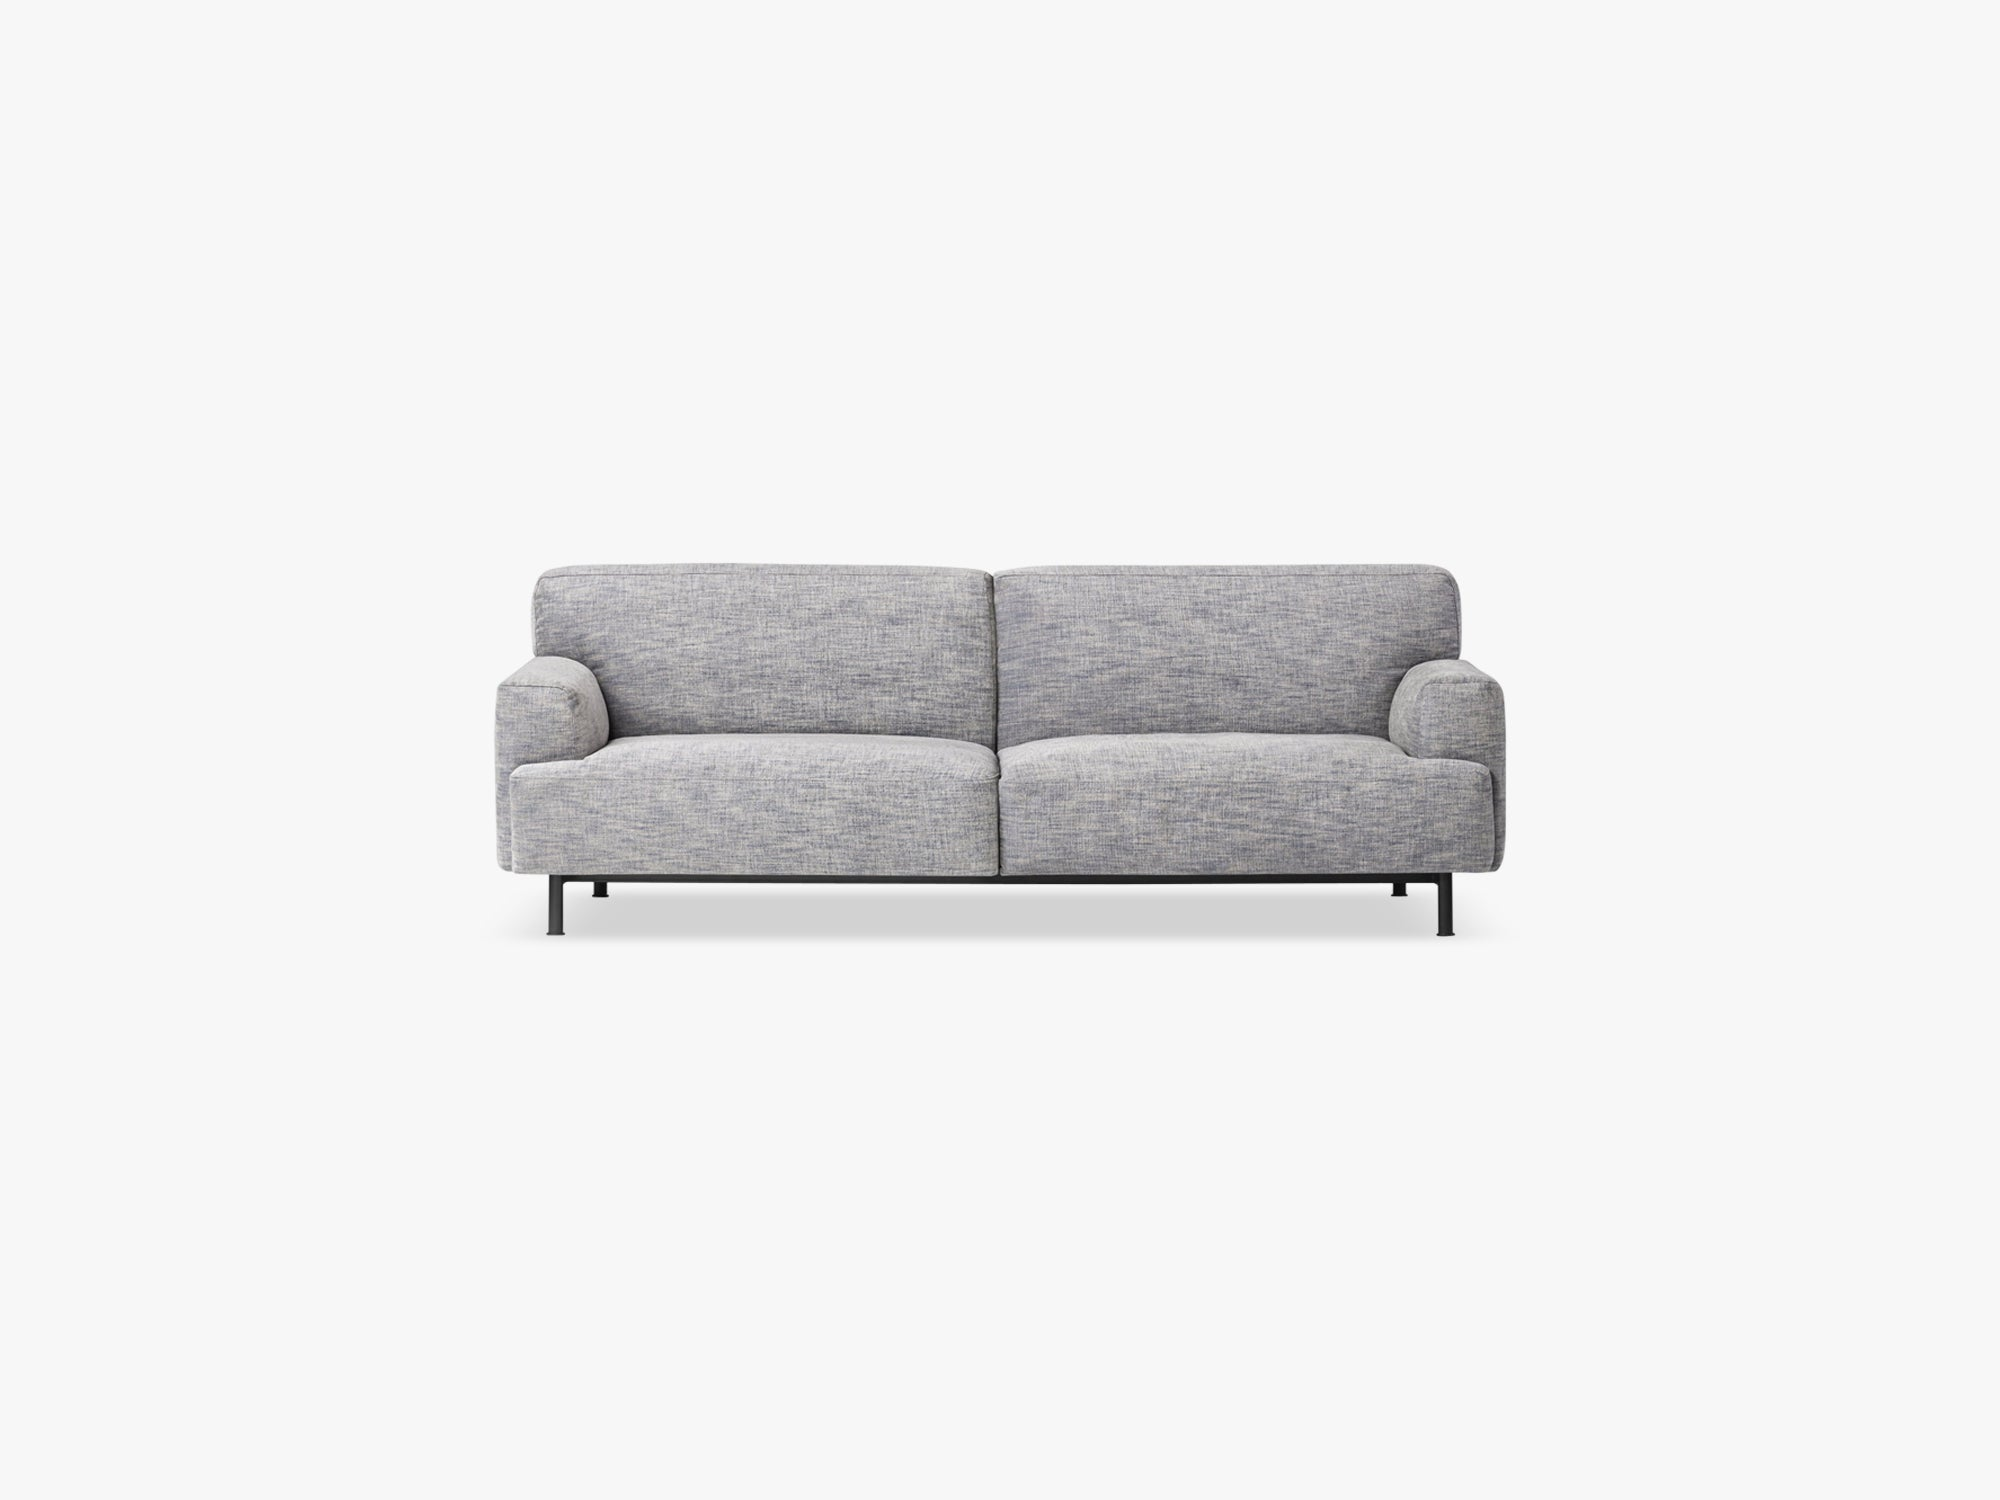 Plenty Sofa/3 Seater, Maple Viscose Fabric fra MILLION